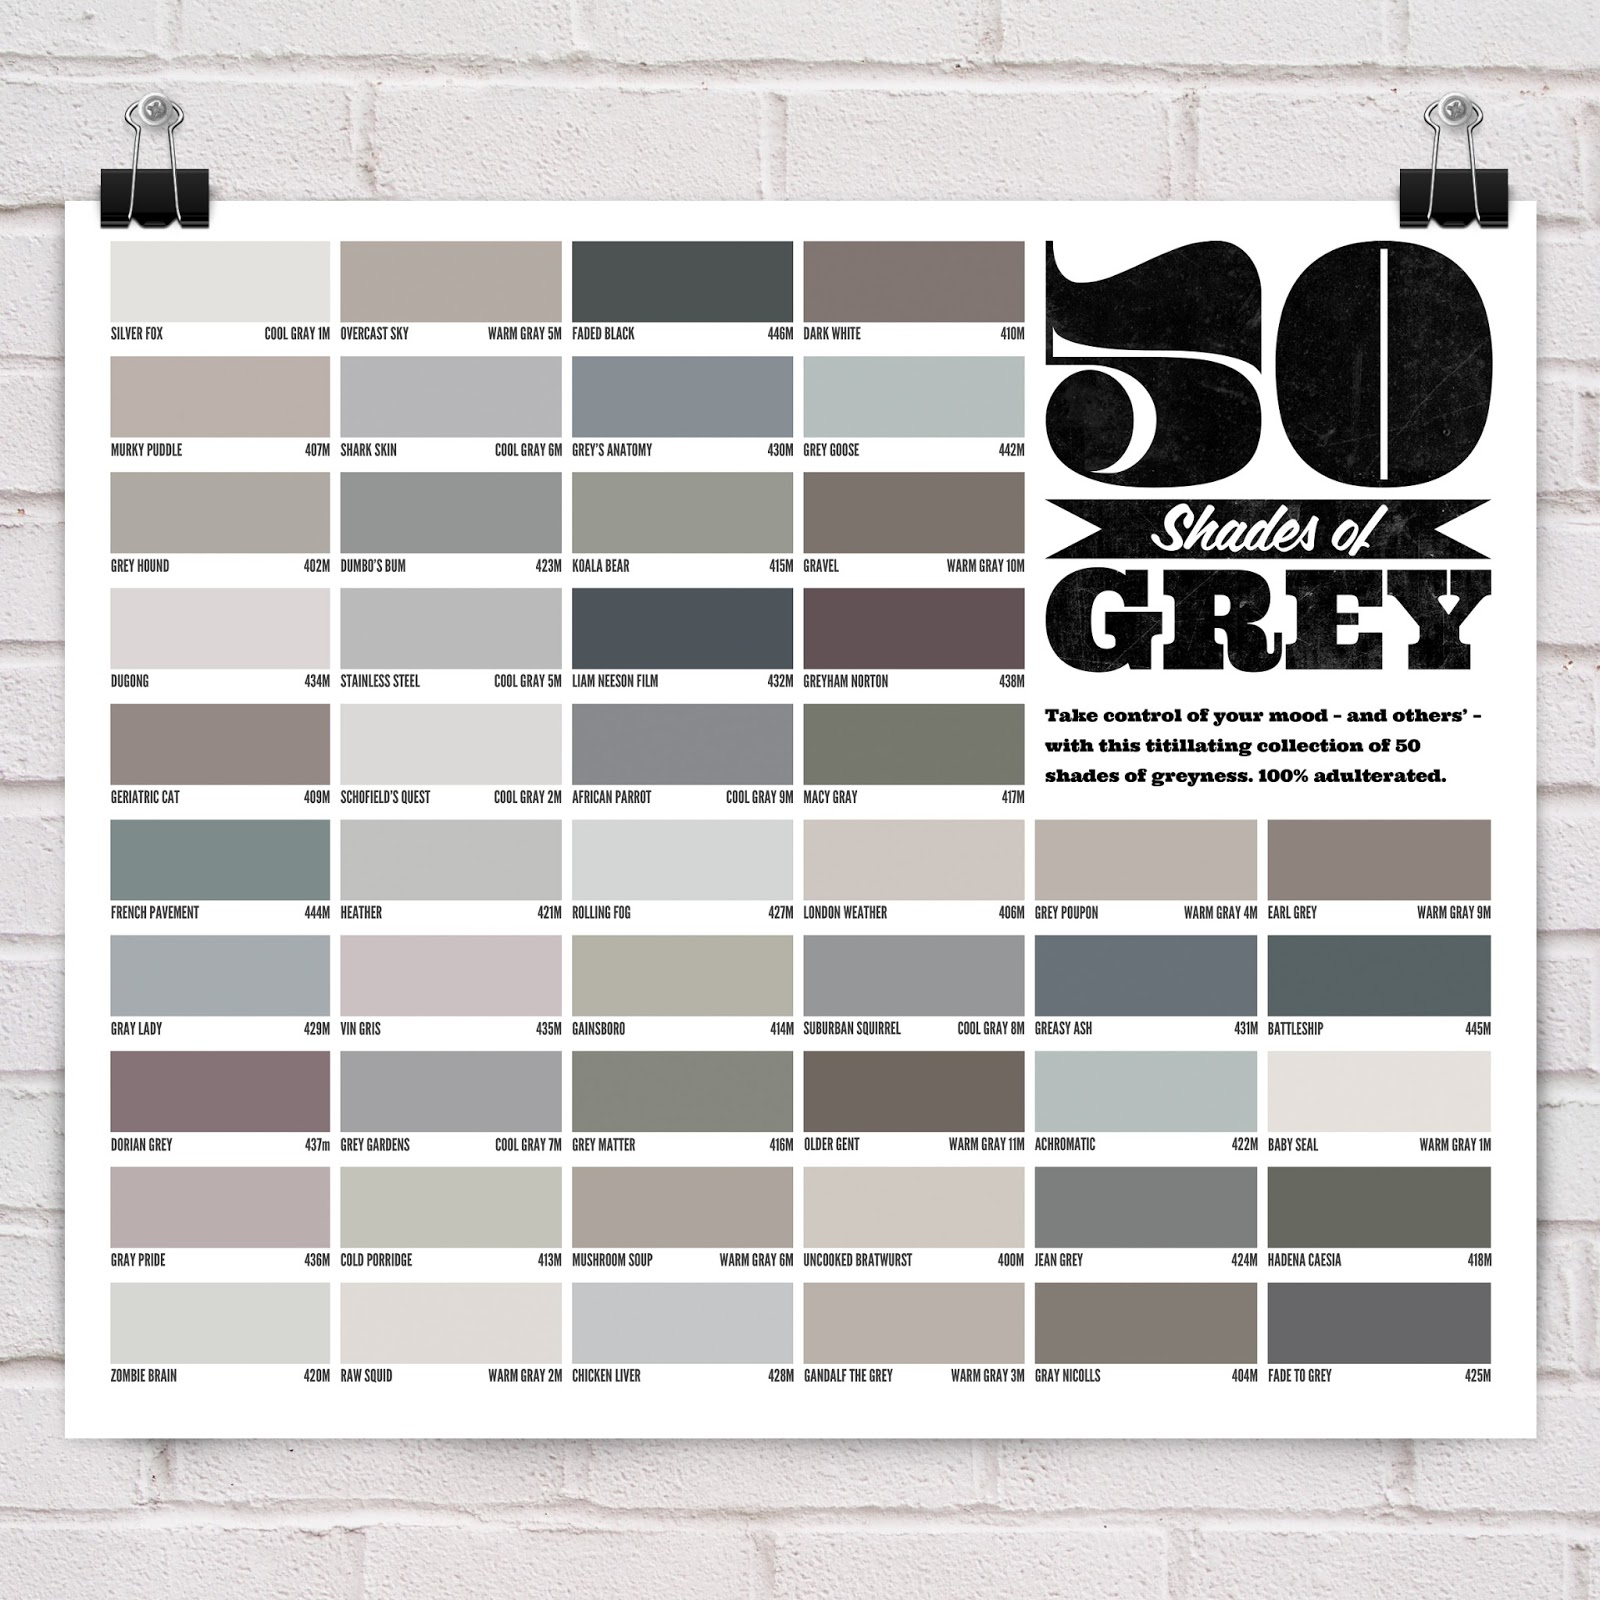 Rijksmuseum Grijs Spencer Alley 50 Shades Of Grey